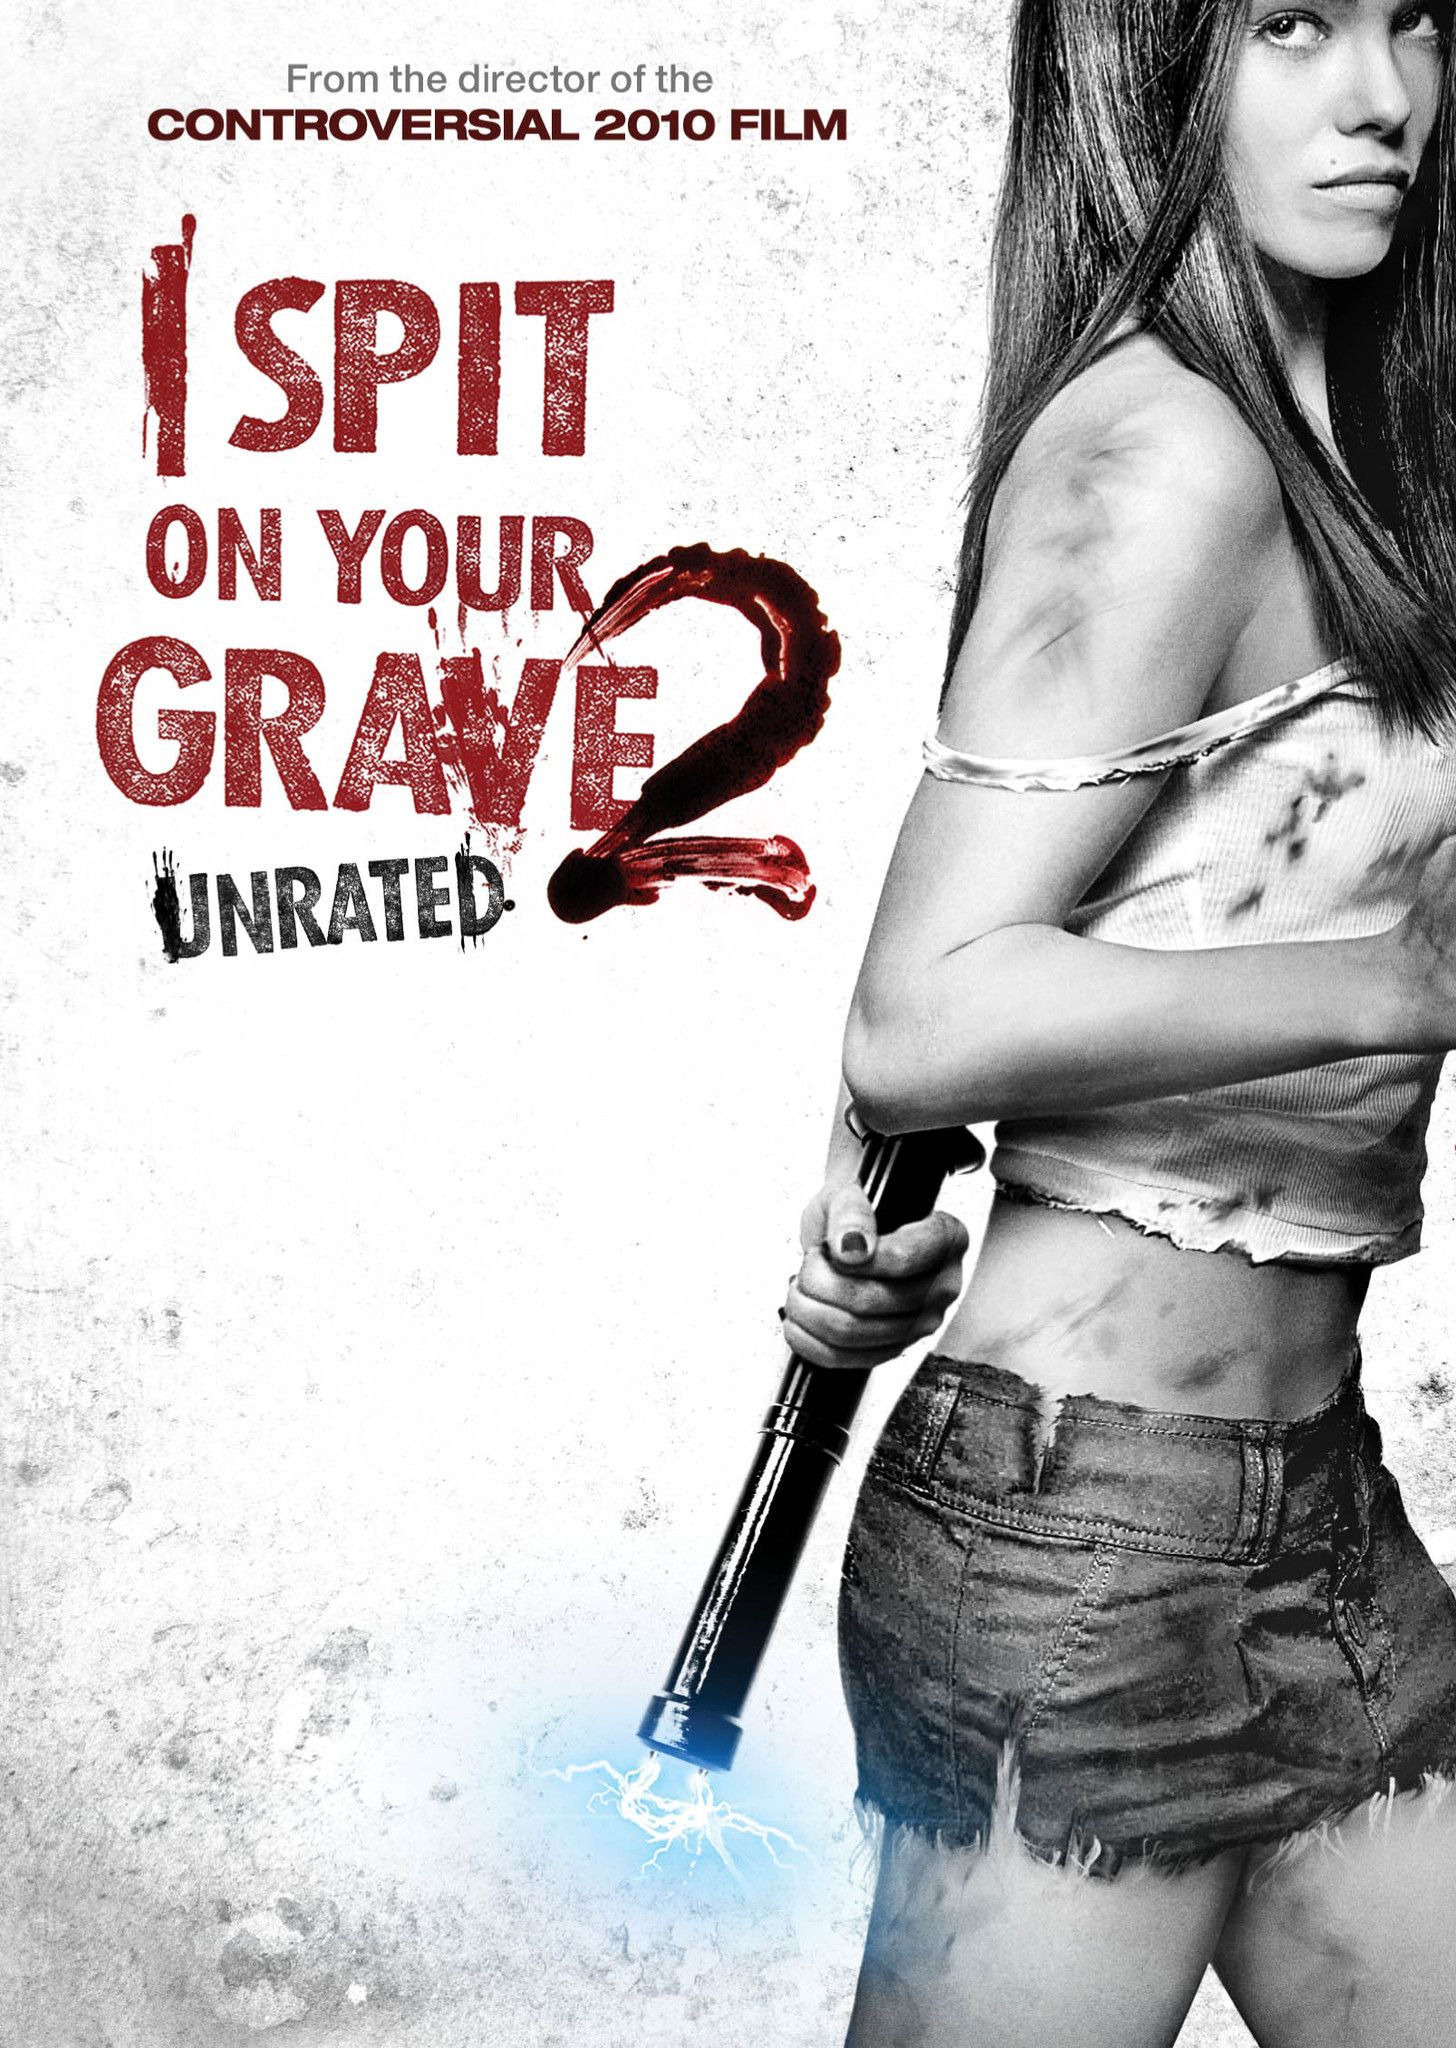 I Spit on Your Grave 2 (2013) - IMDb